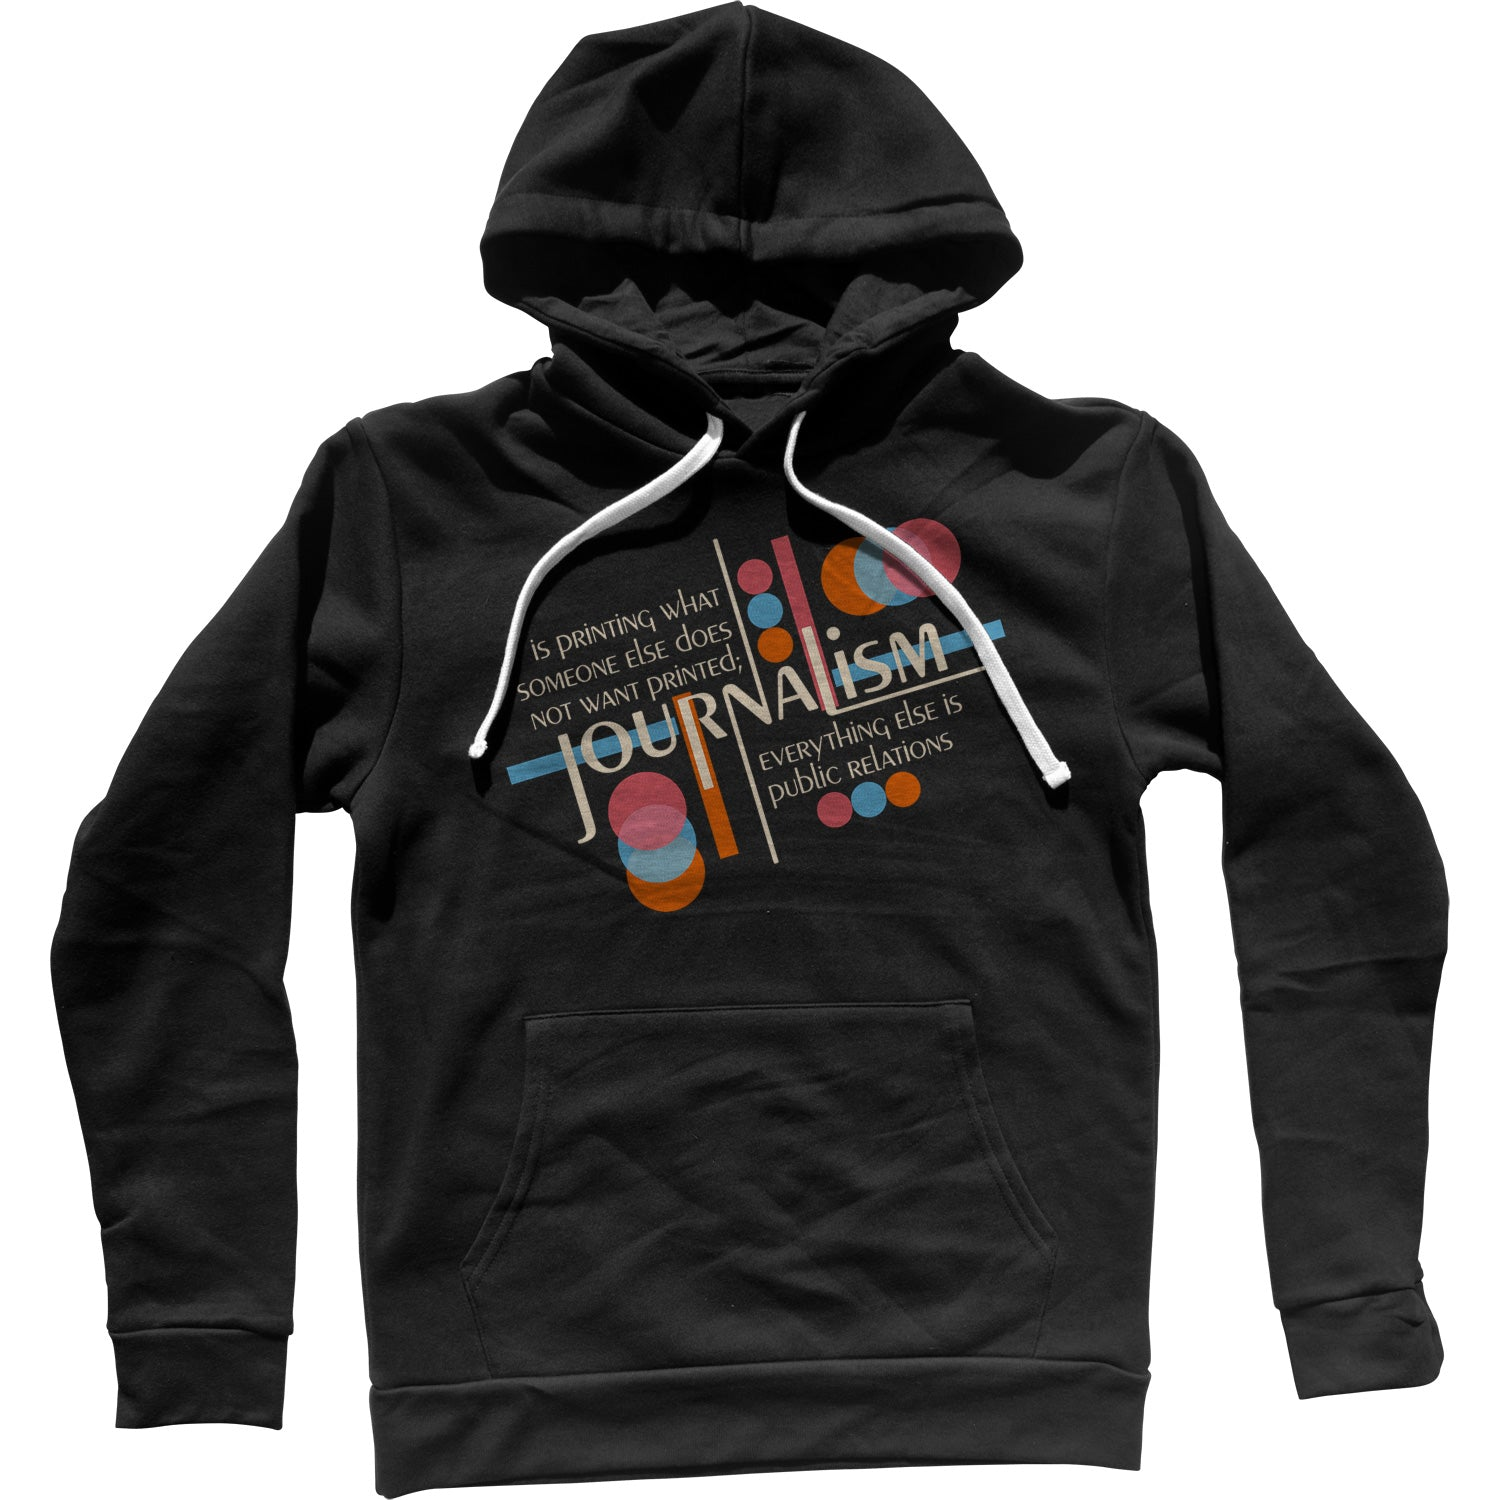 Journalism is Printing What Someone Does Not Want Printed Unisex Hoodie